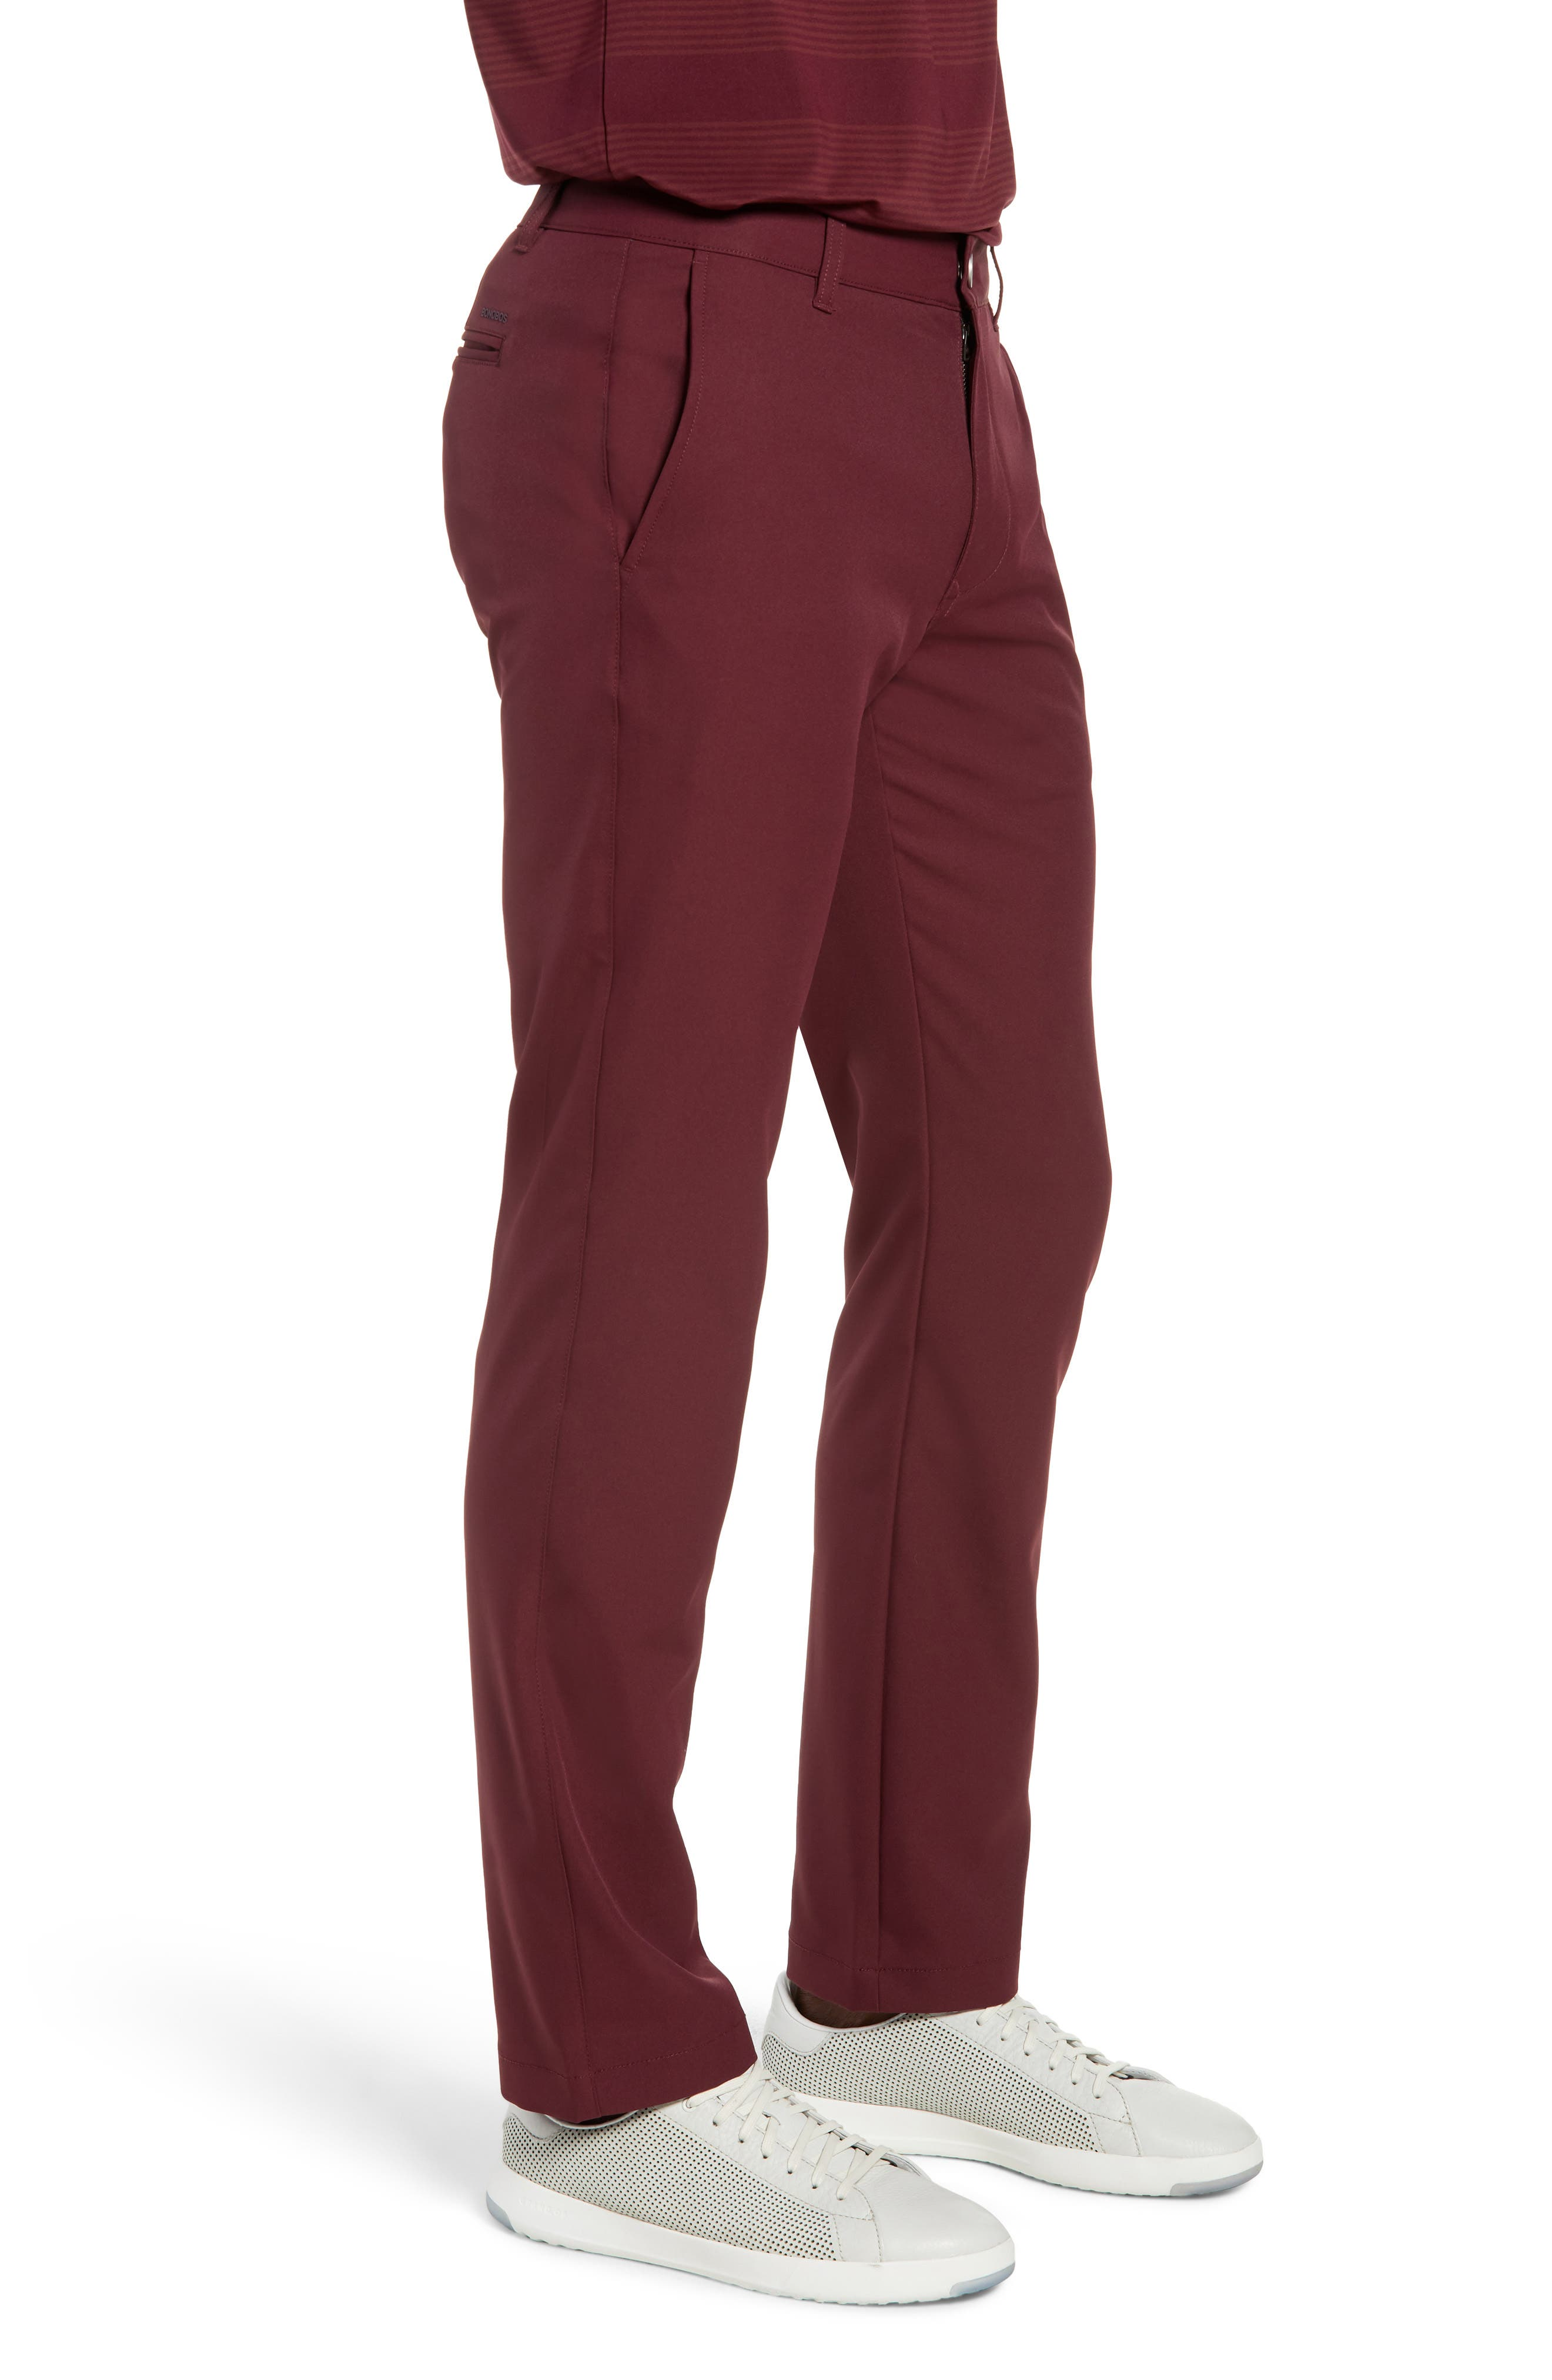 Highland Slim Fit Golf Pants,                             Alternate thumbnail 3, color,                             600